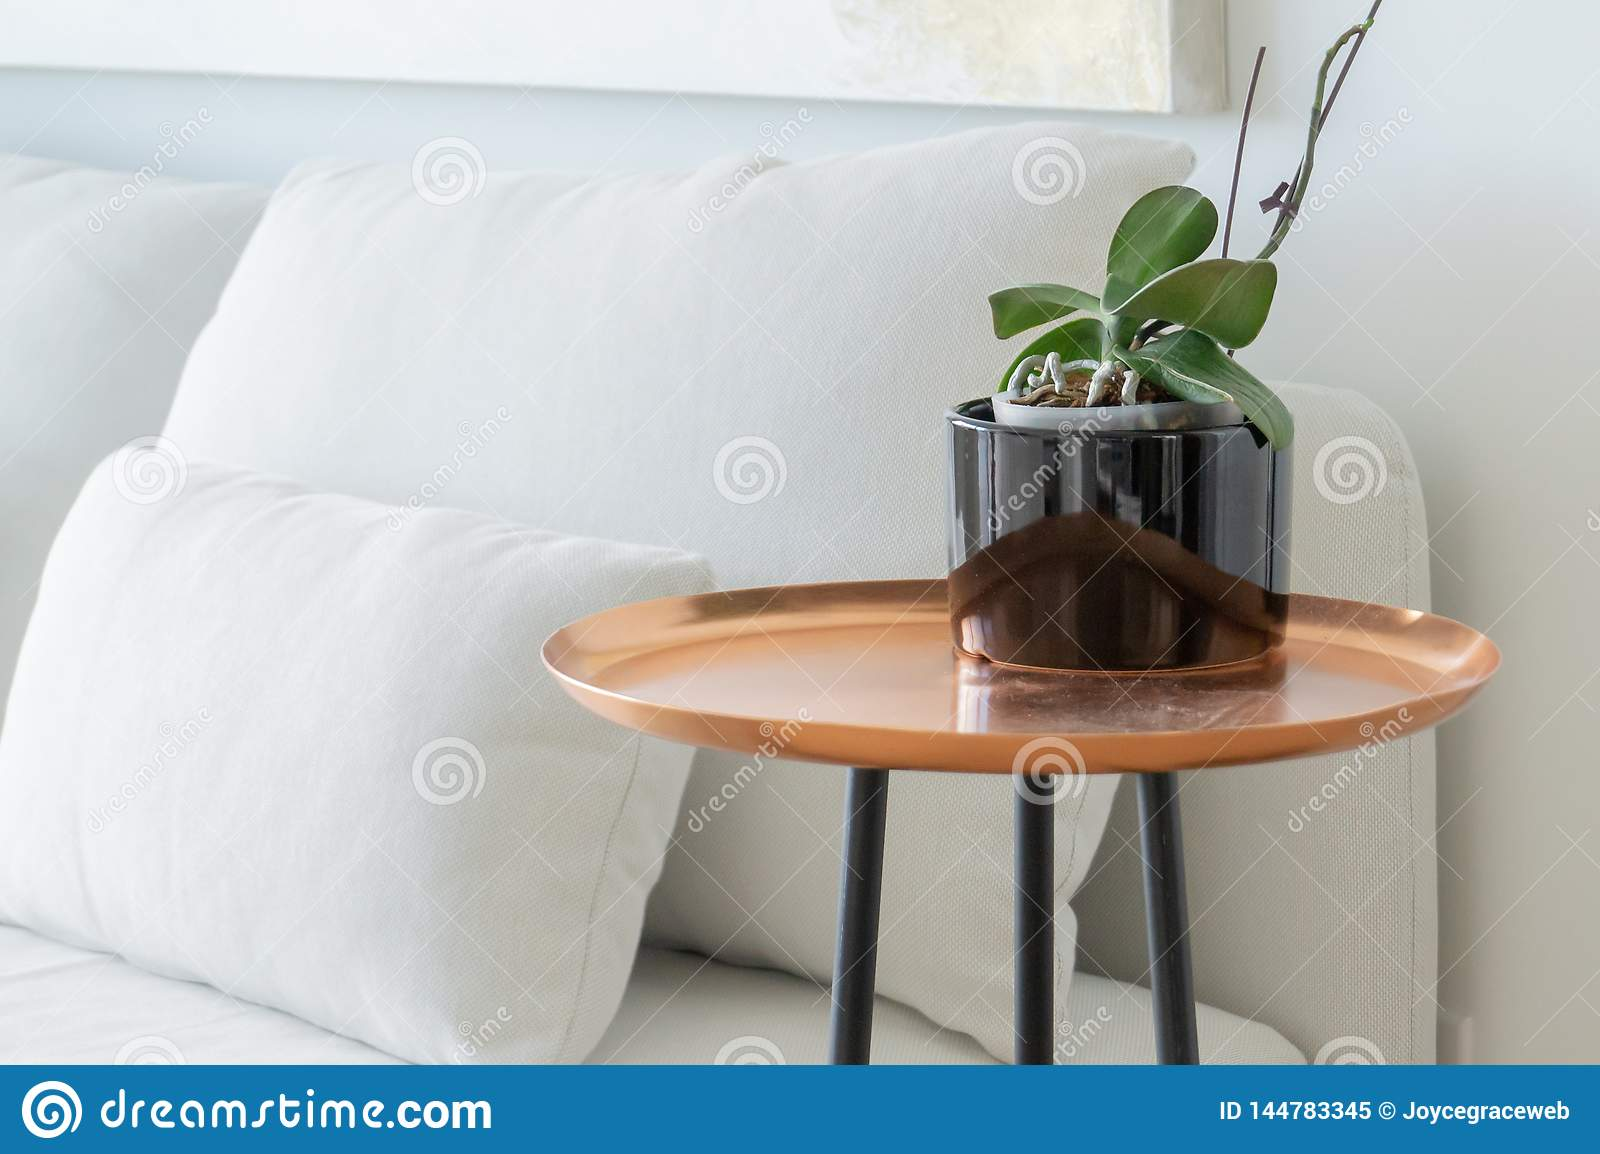 Surprising Copper Tray Side Table With Black Legs Next To A White Pdpeps Interior Chair Design Pdpepsorg